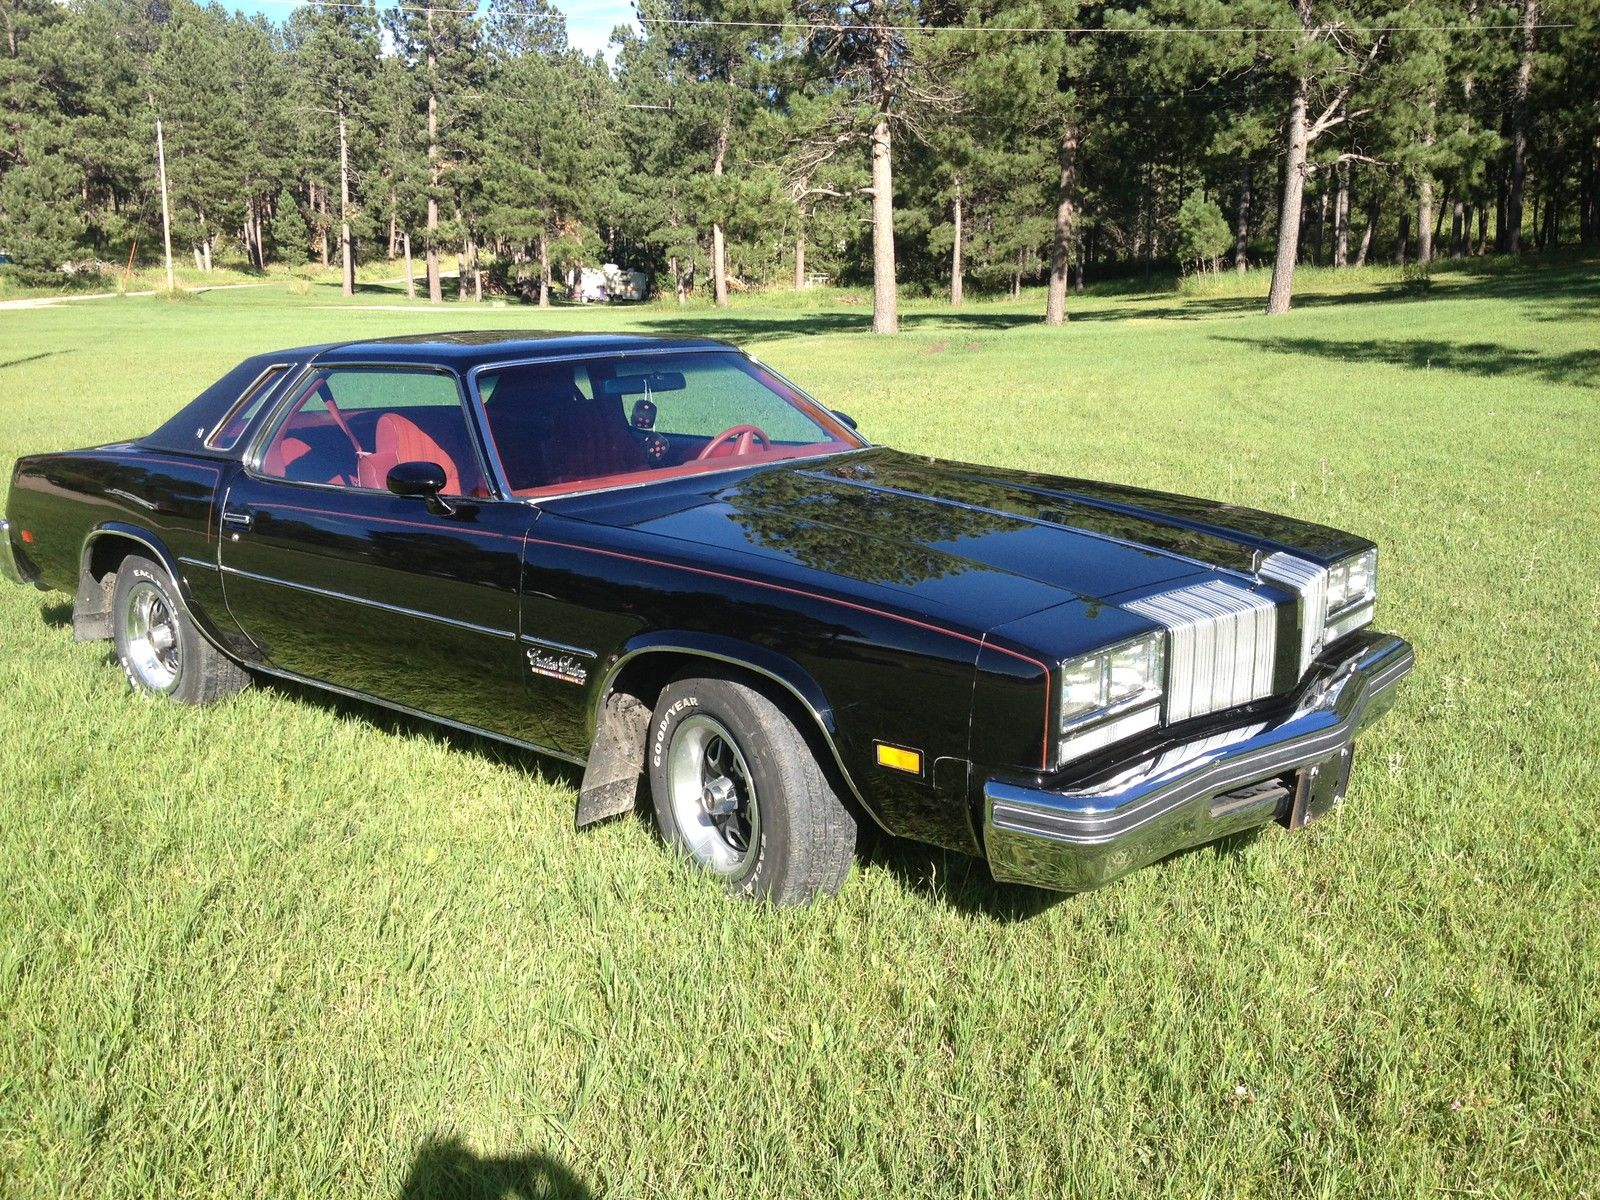 1977 oldsmobile cutlass salon 39k actual miles along with for 1977 olds cutlass salon for sale